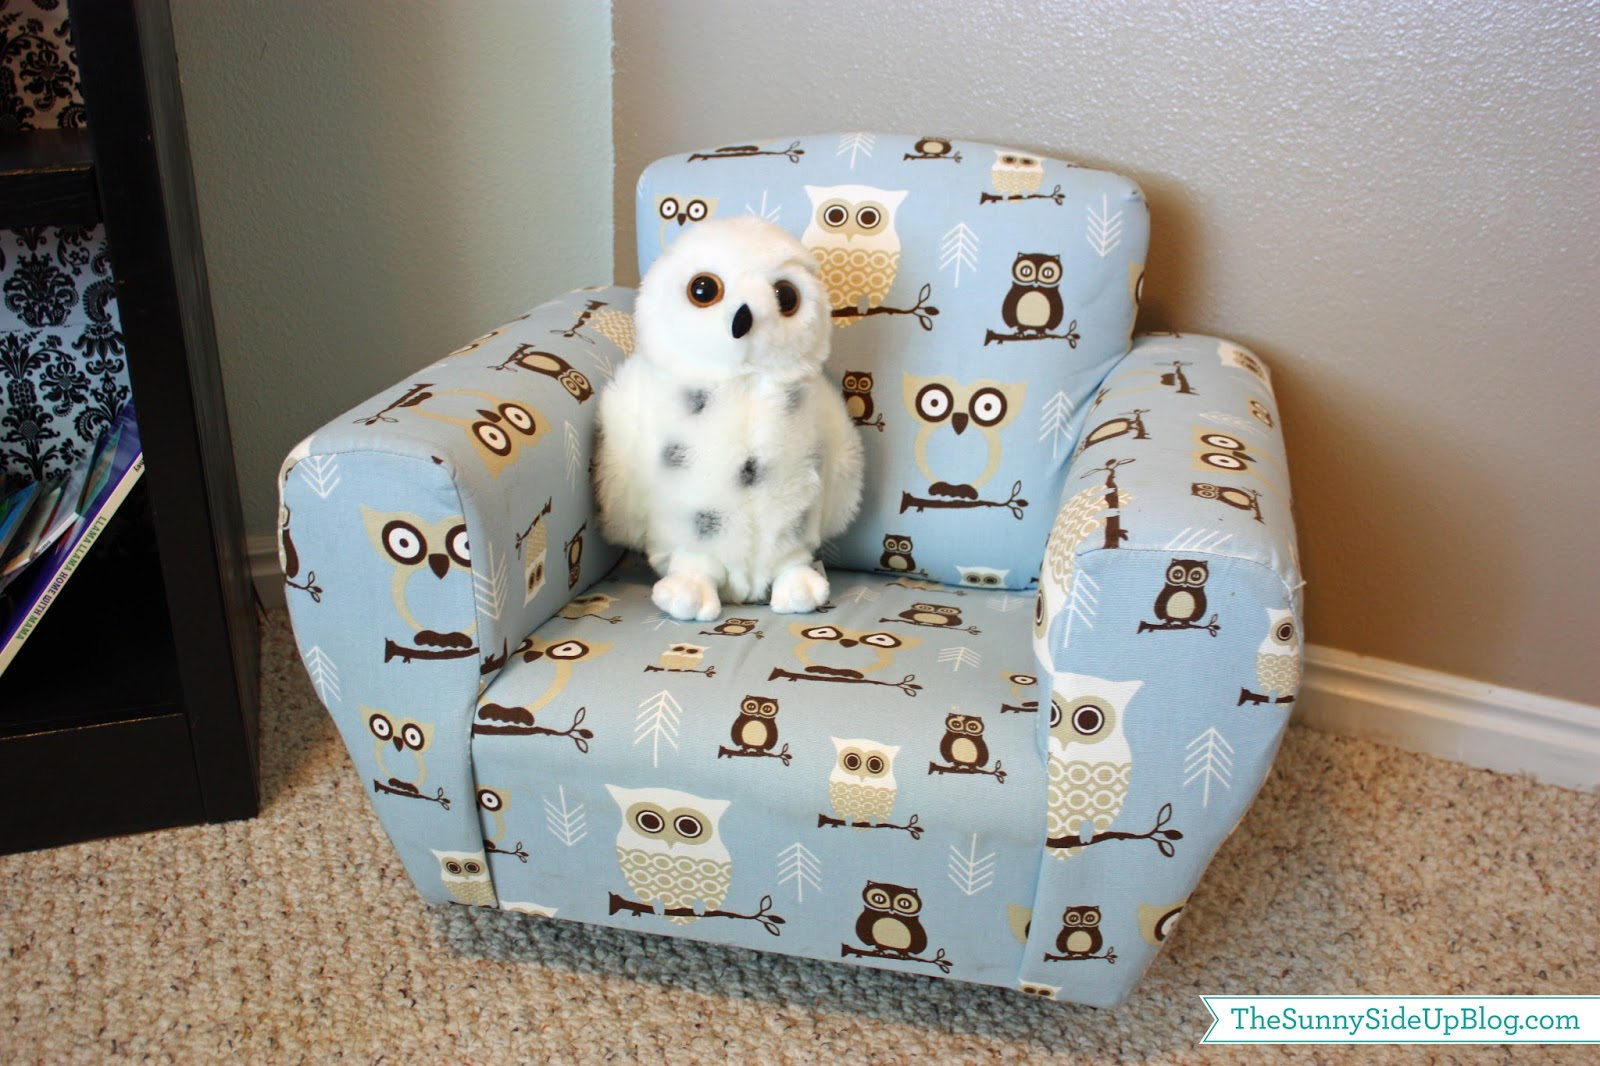 owl chair for kids accent swivel chairs decorating on a budget fun ideas the sunny side up blog